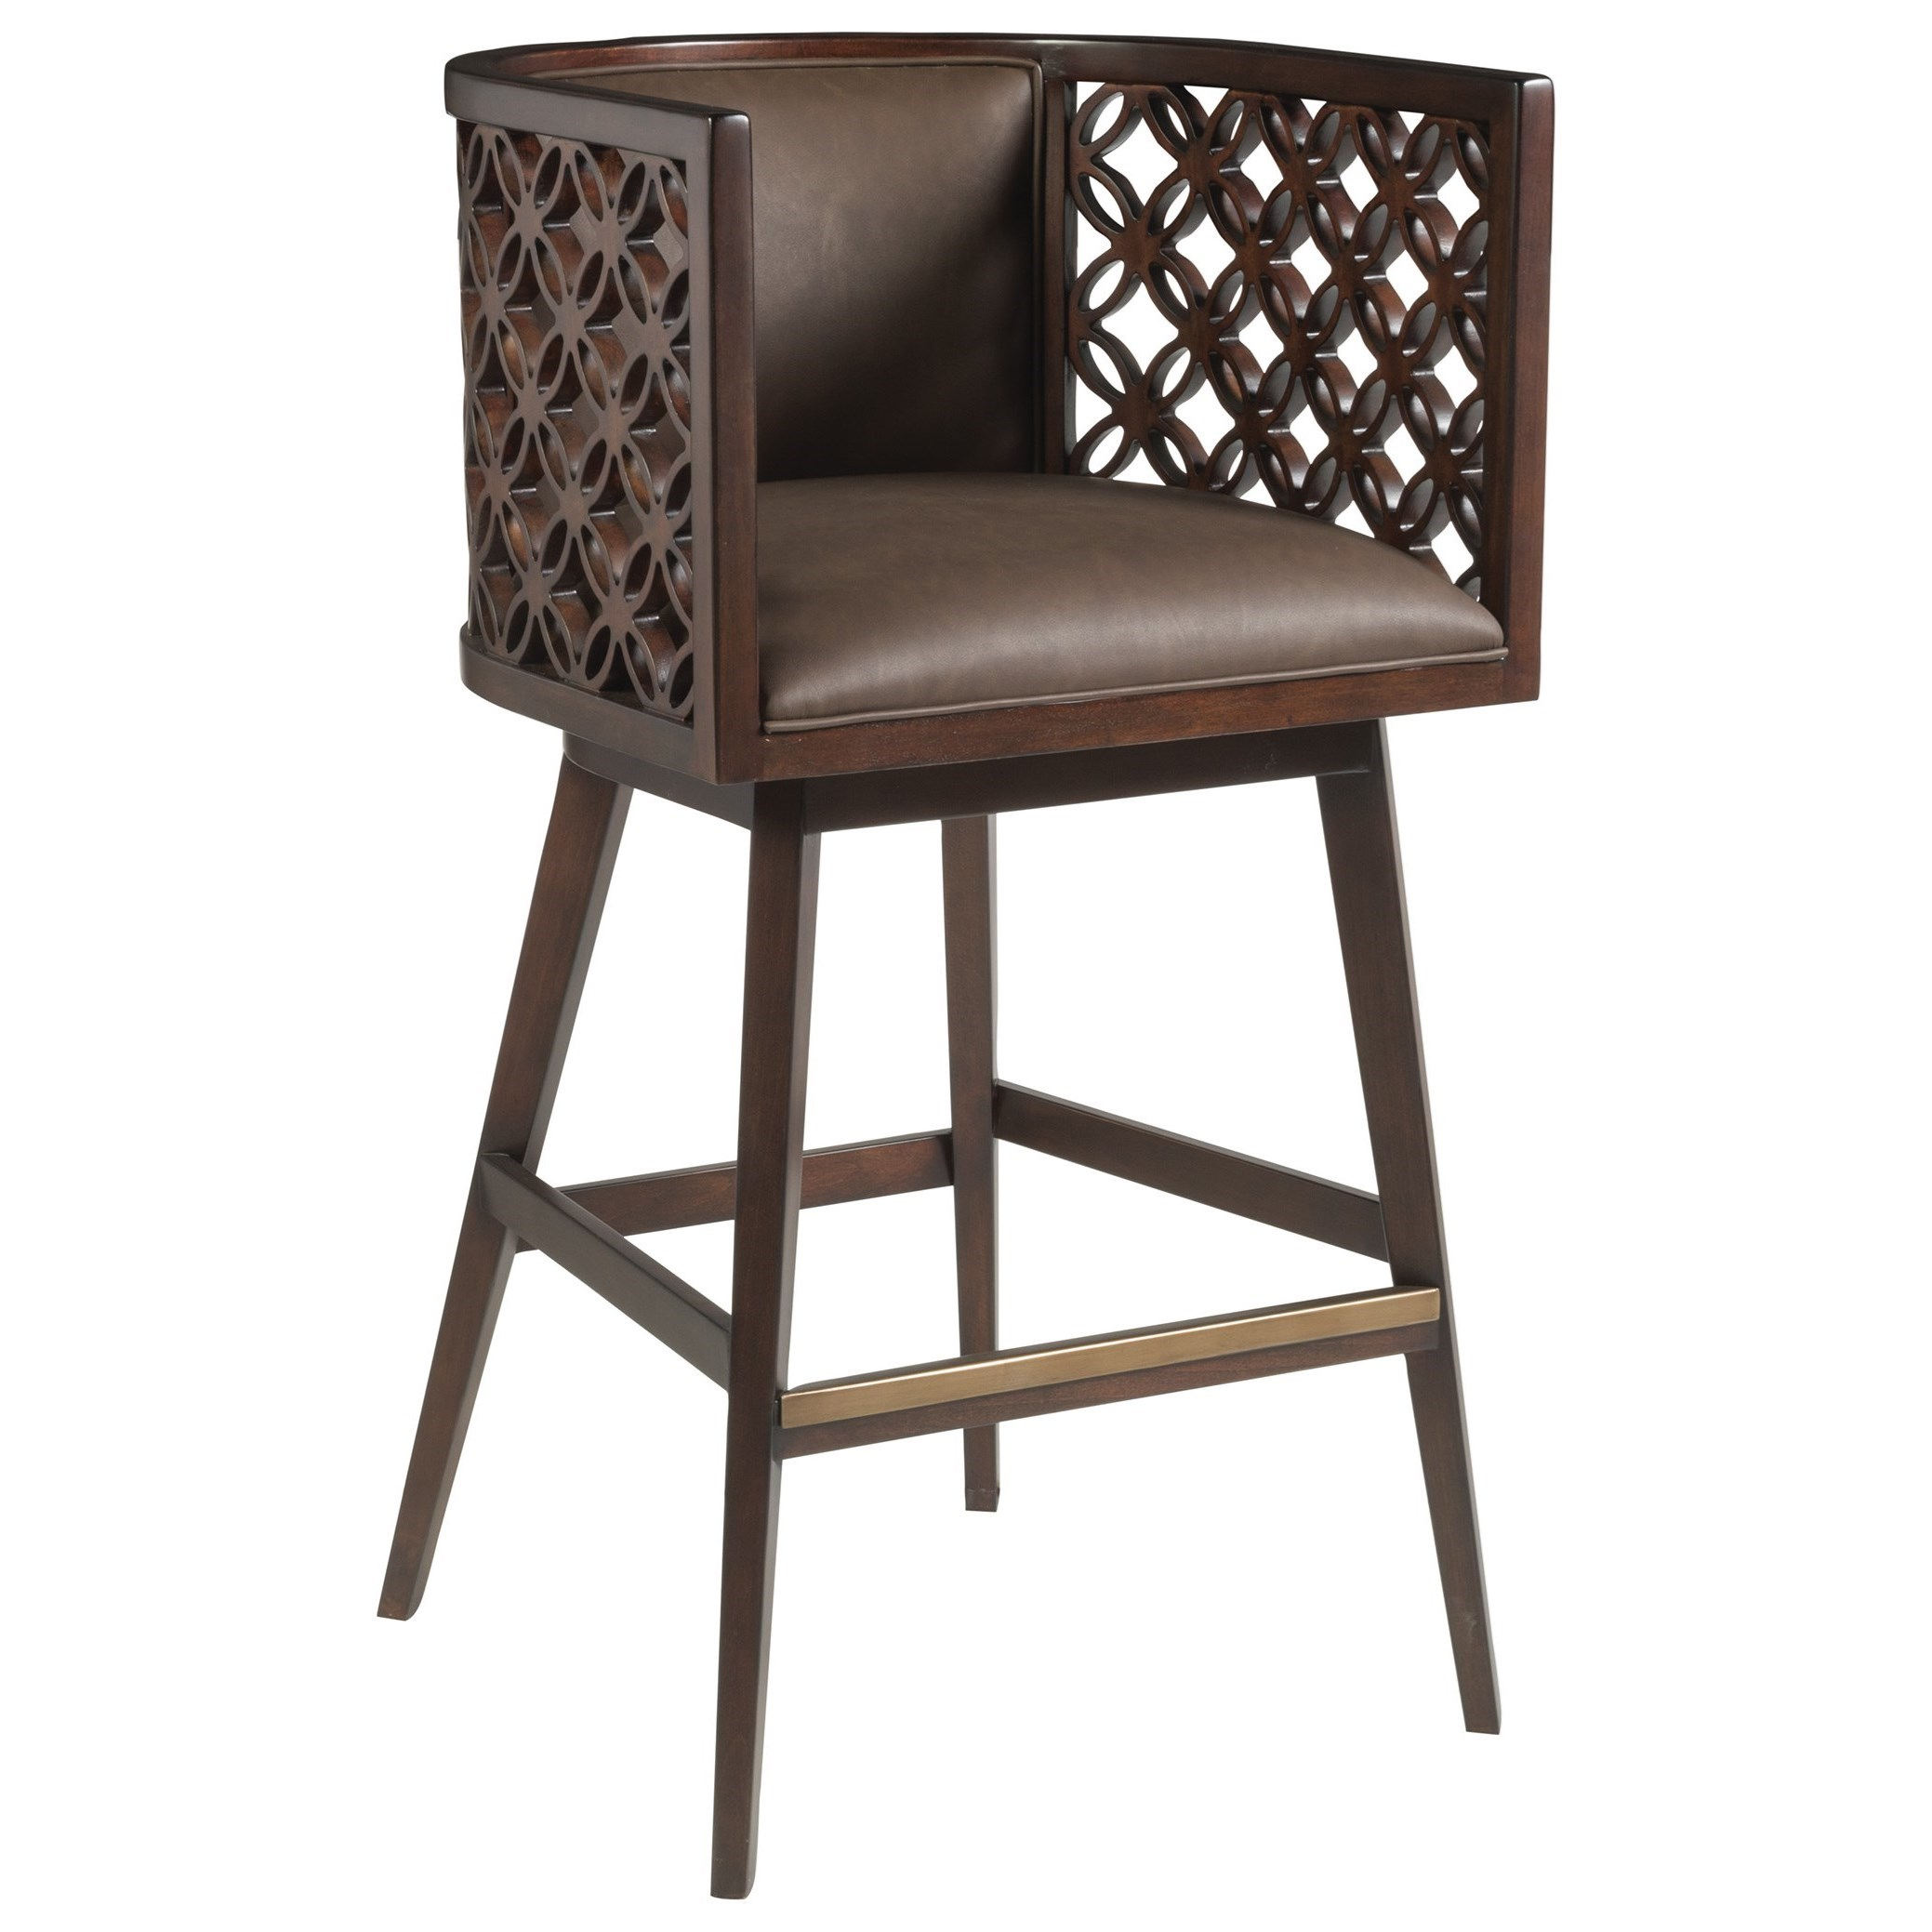 Vivace Swivel Barstool by Artistica at Sprintz Furniture